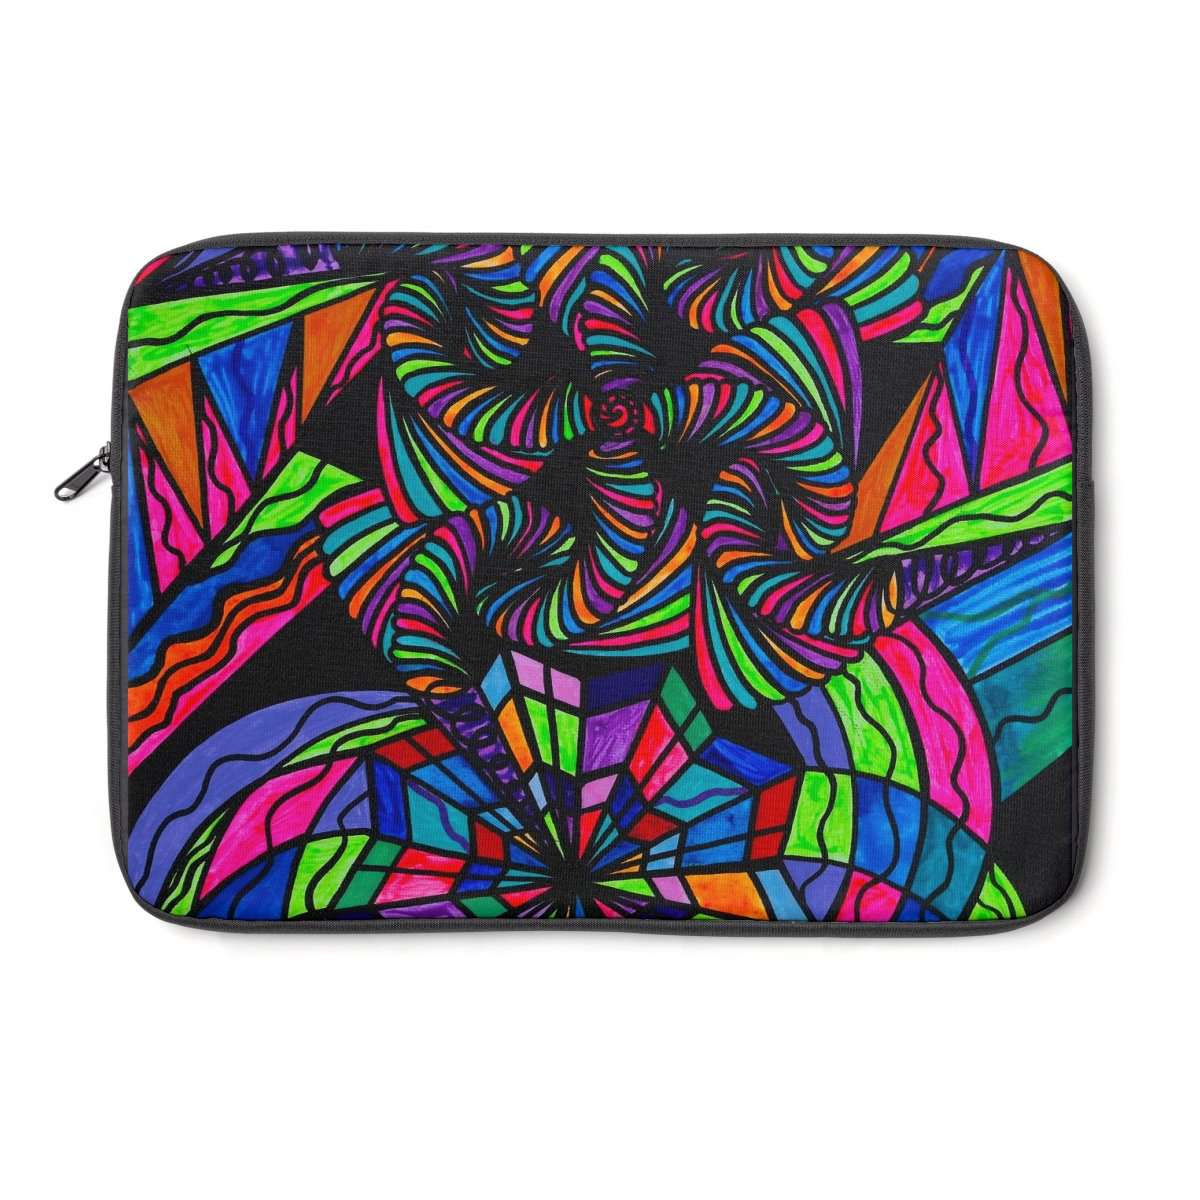 Burgeon-- Laptop Sleeve